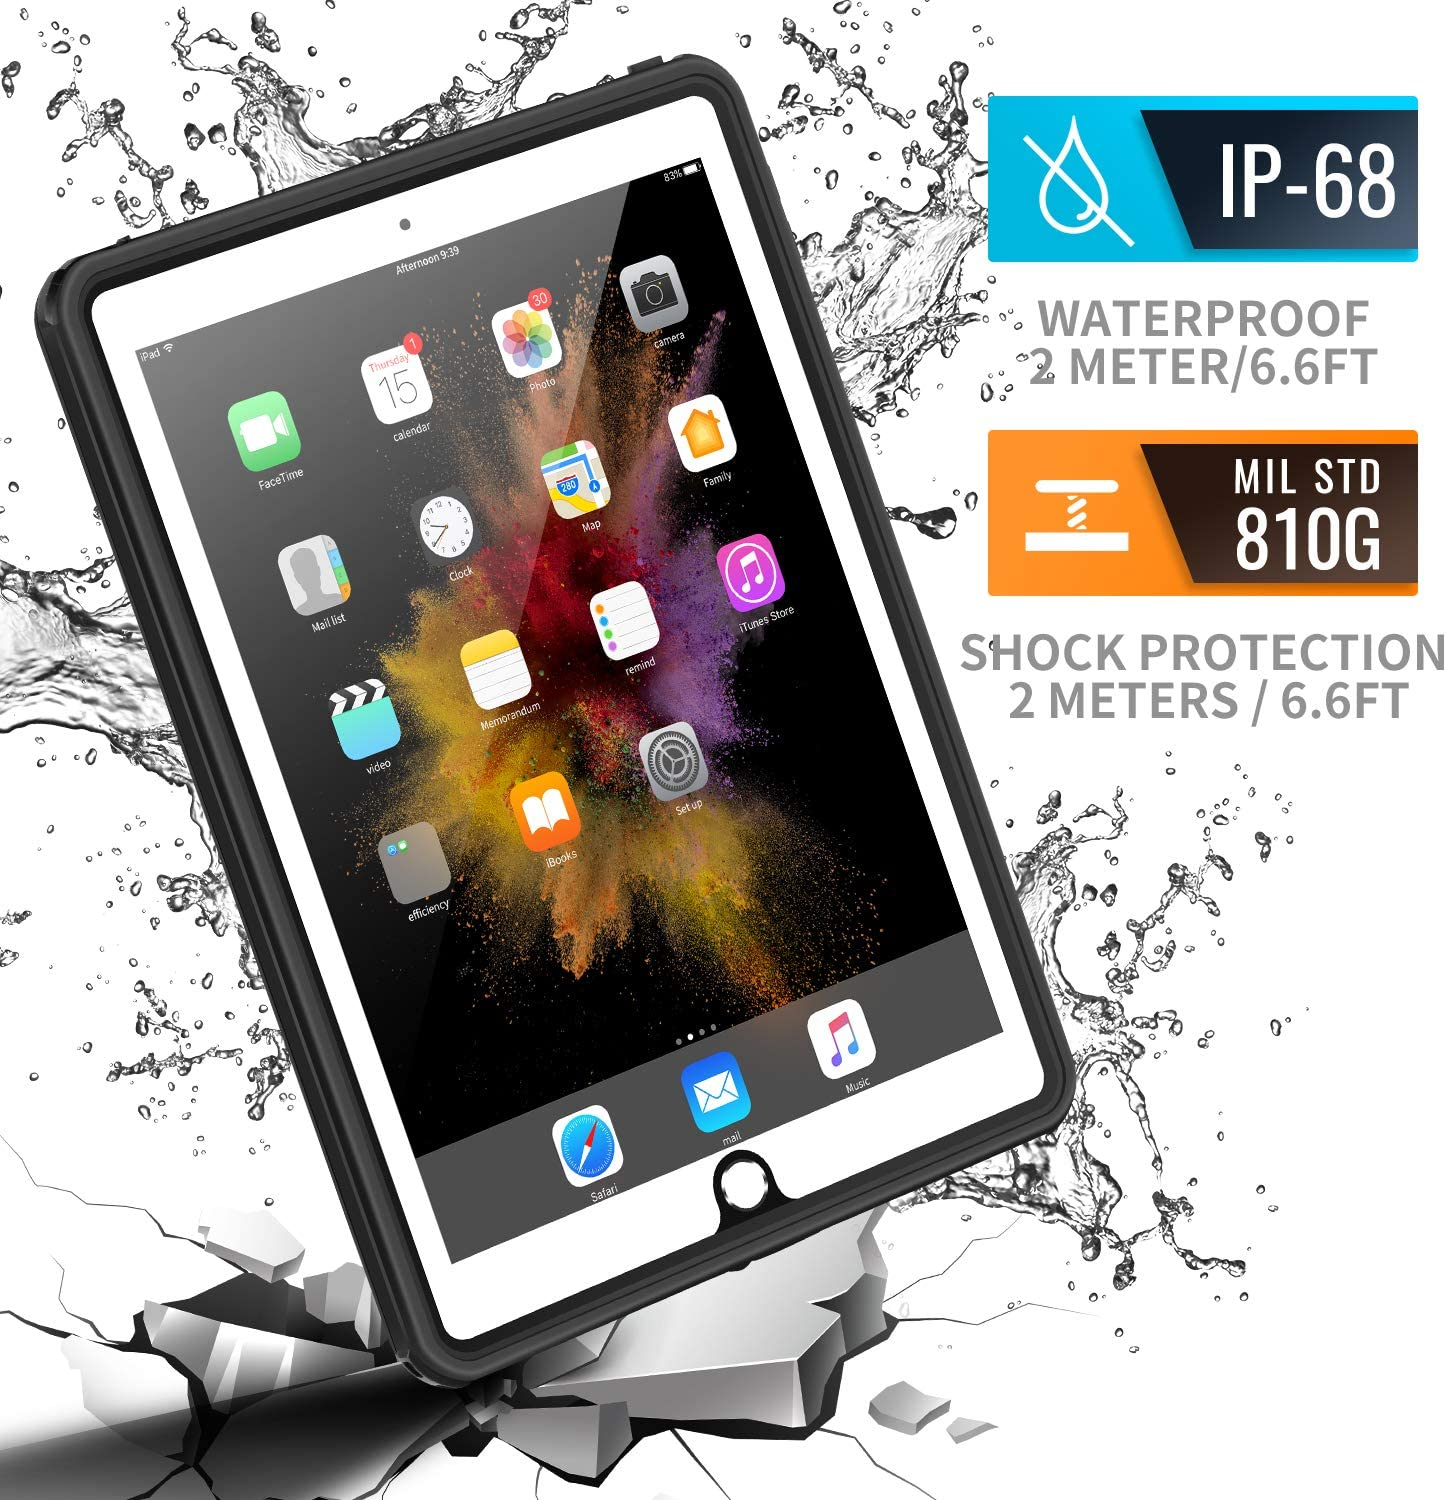 meritcase Waterproof Case for iPad 9.7( 2017/2018/Air), IP68 Full Protection Rugged Heavy Duty Shockproof Snowproof Dustproof Cover with Table Stand for Apple iPad 5th/6th Gen/iPad Air-Black